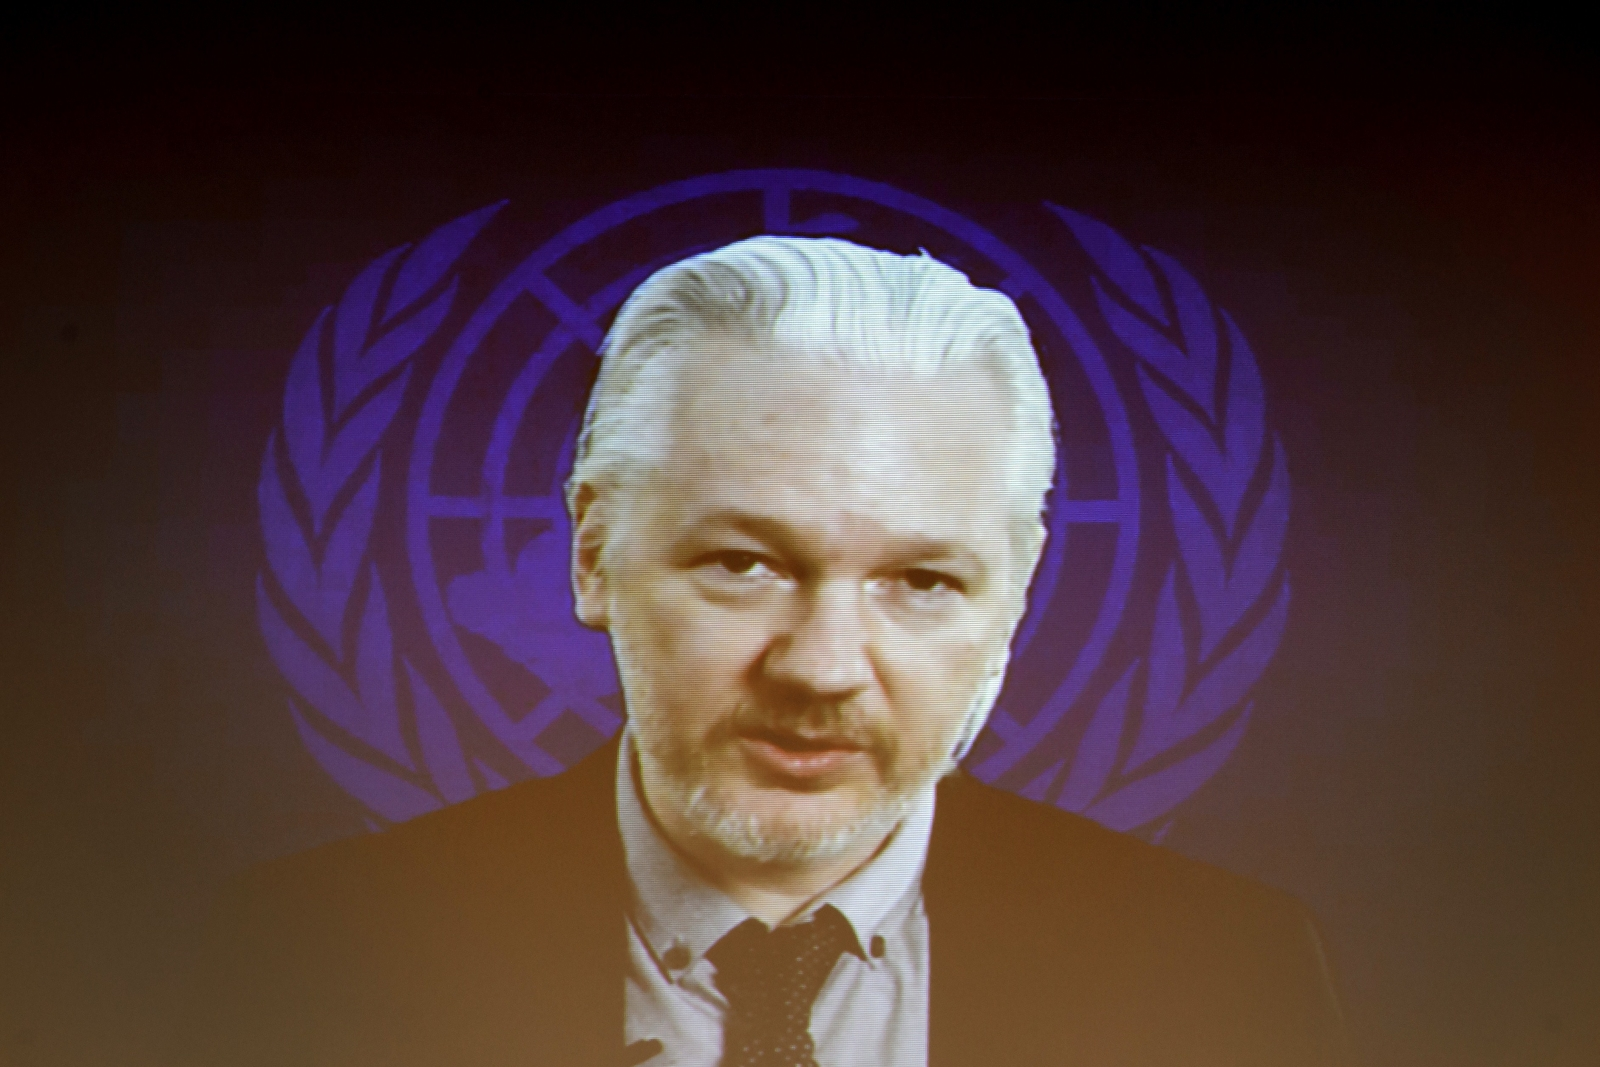 Julian Assange speaking via webcast to UN